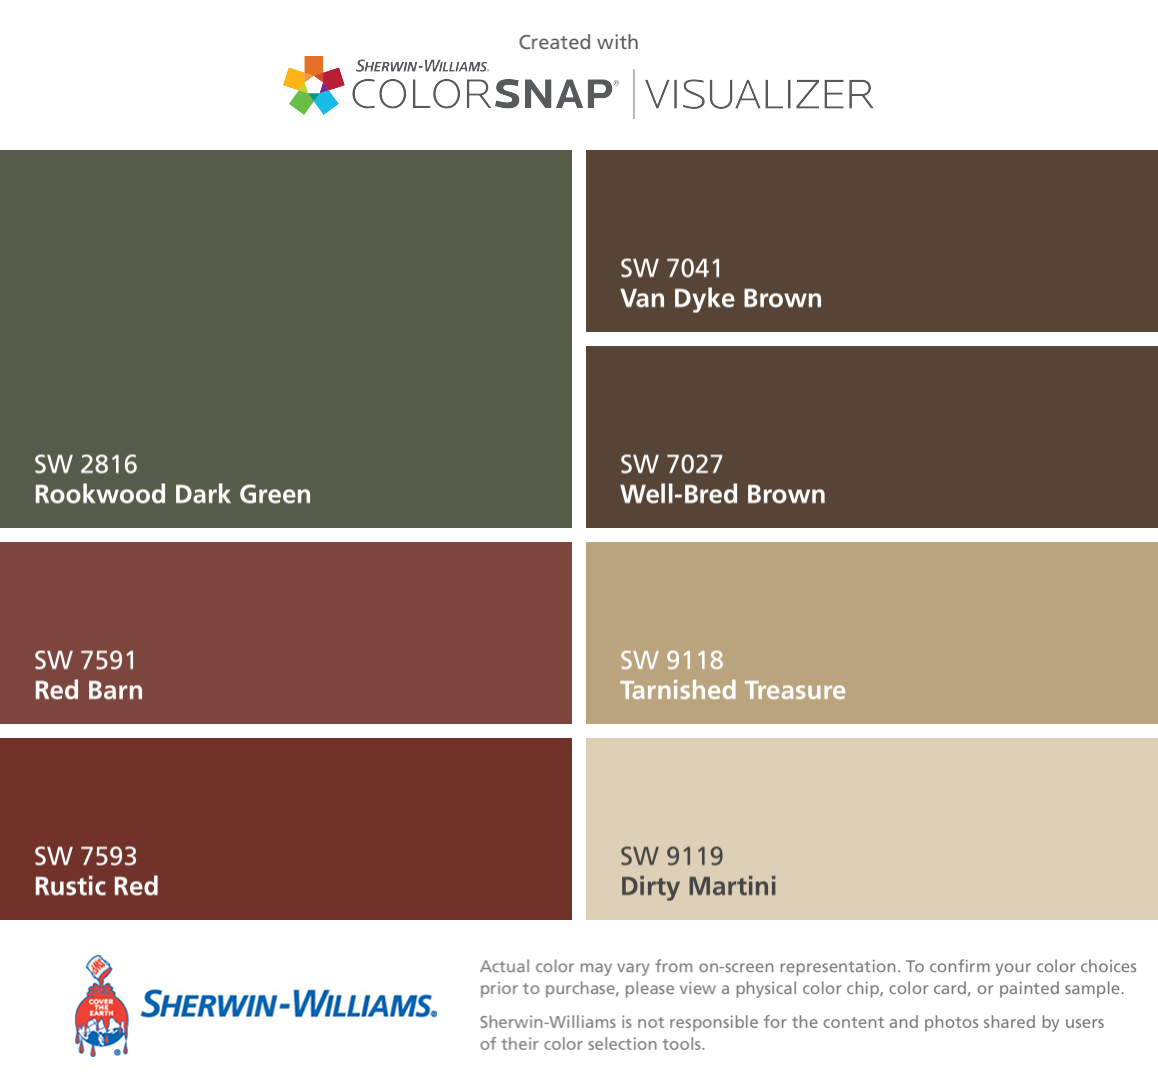 I Found These Colors With ColorSnapR Visualizer For IPhone By Sherwin Williams Rookwood Dark Green SW 2816 Red Barn 7591 Rustic 7593